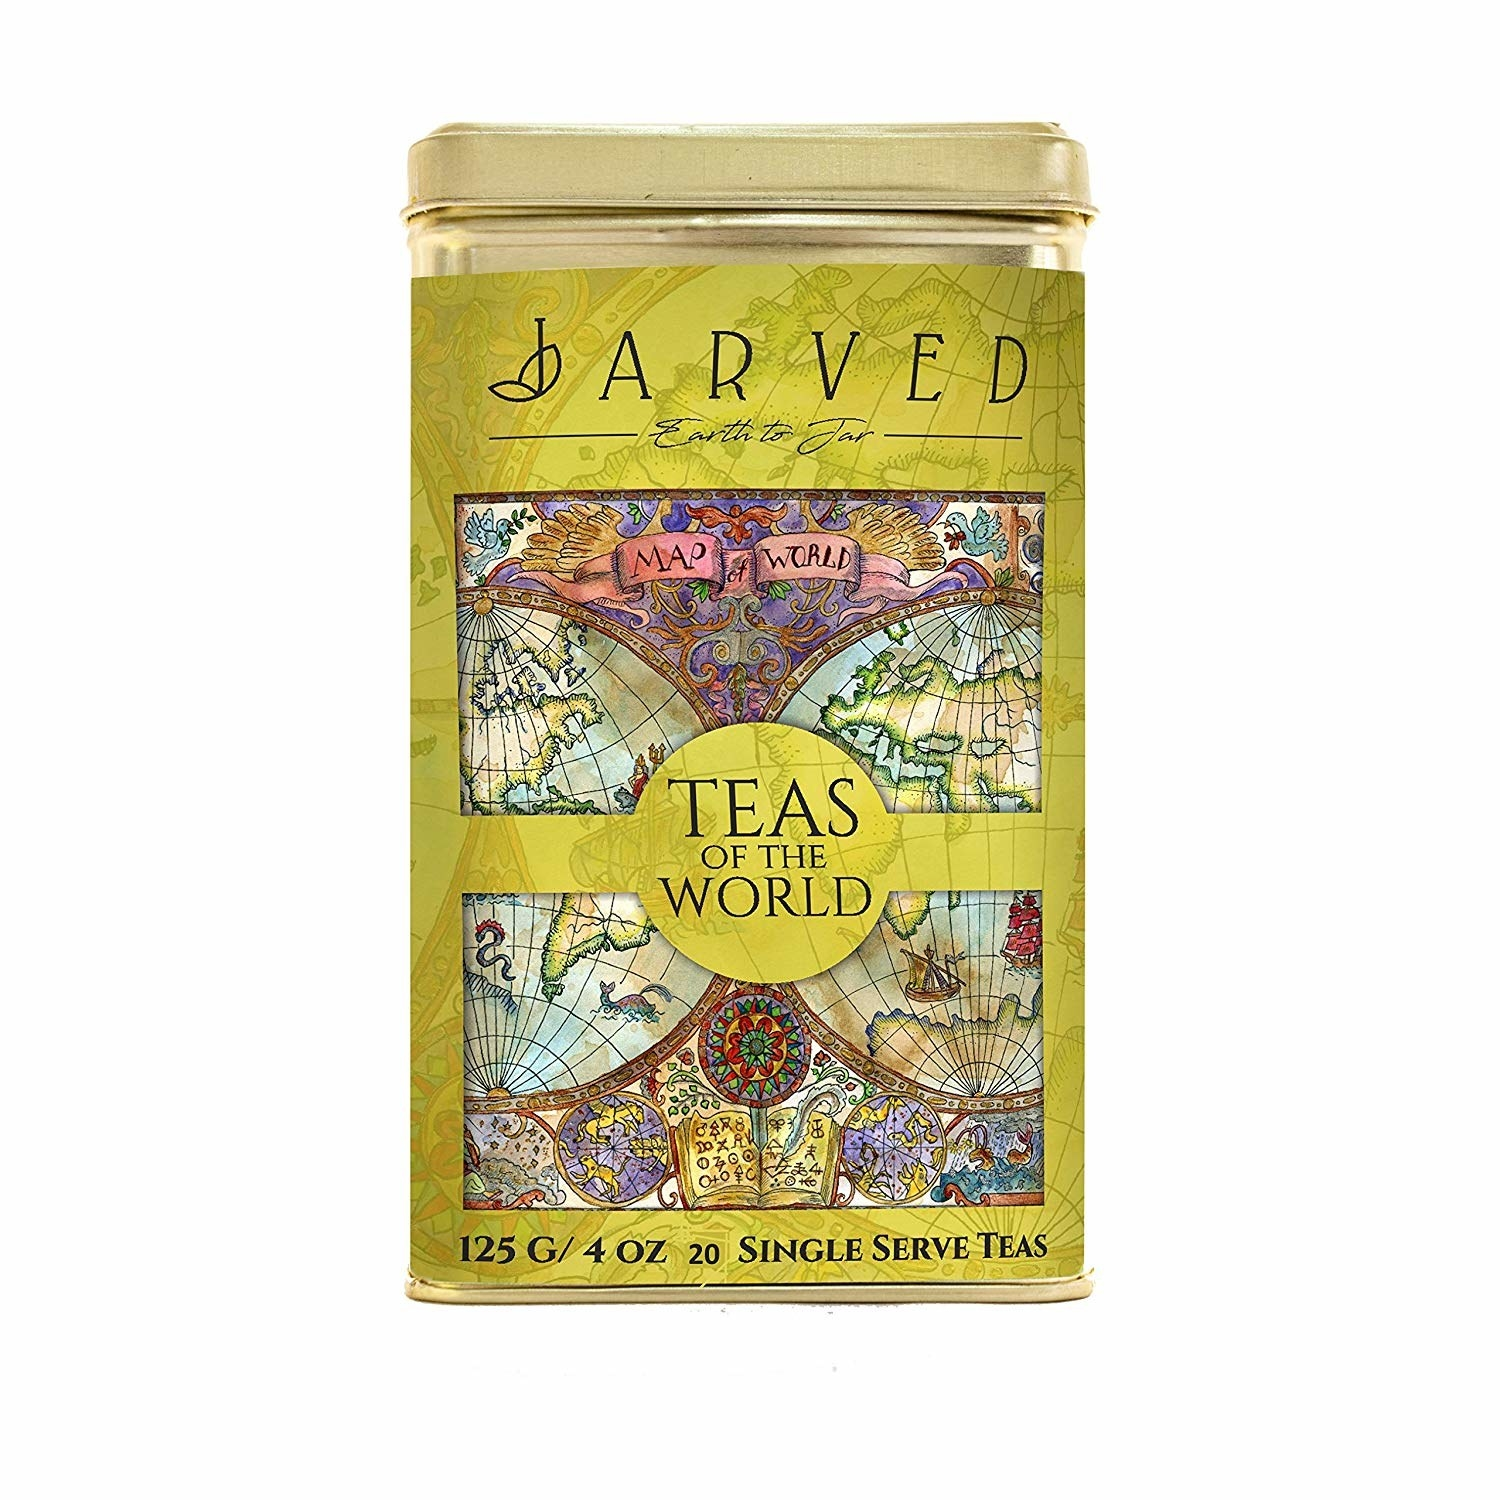 A tin can containing different types of teas